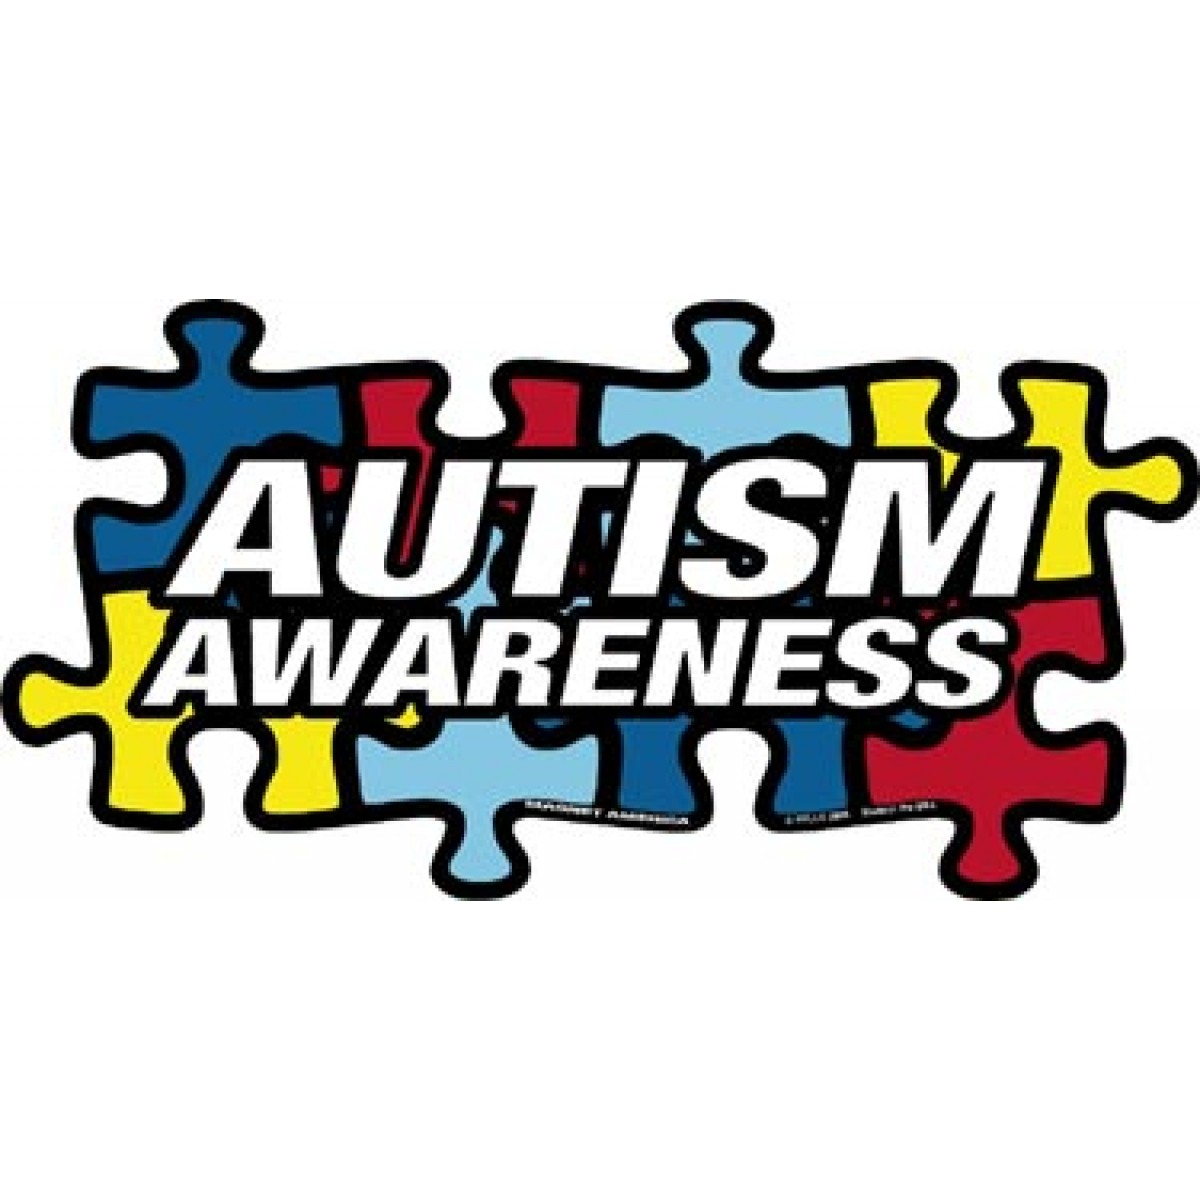 We are supporting autism awareness / acceptance week which starts today.